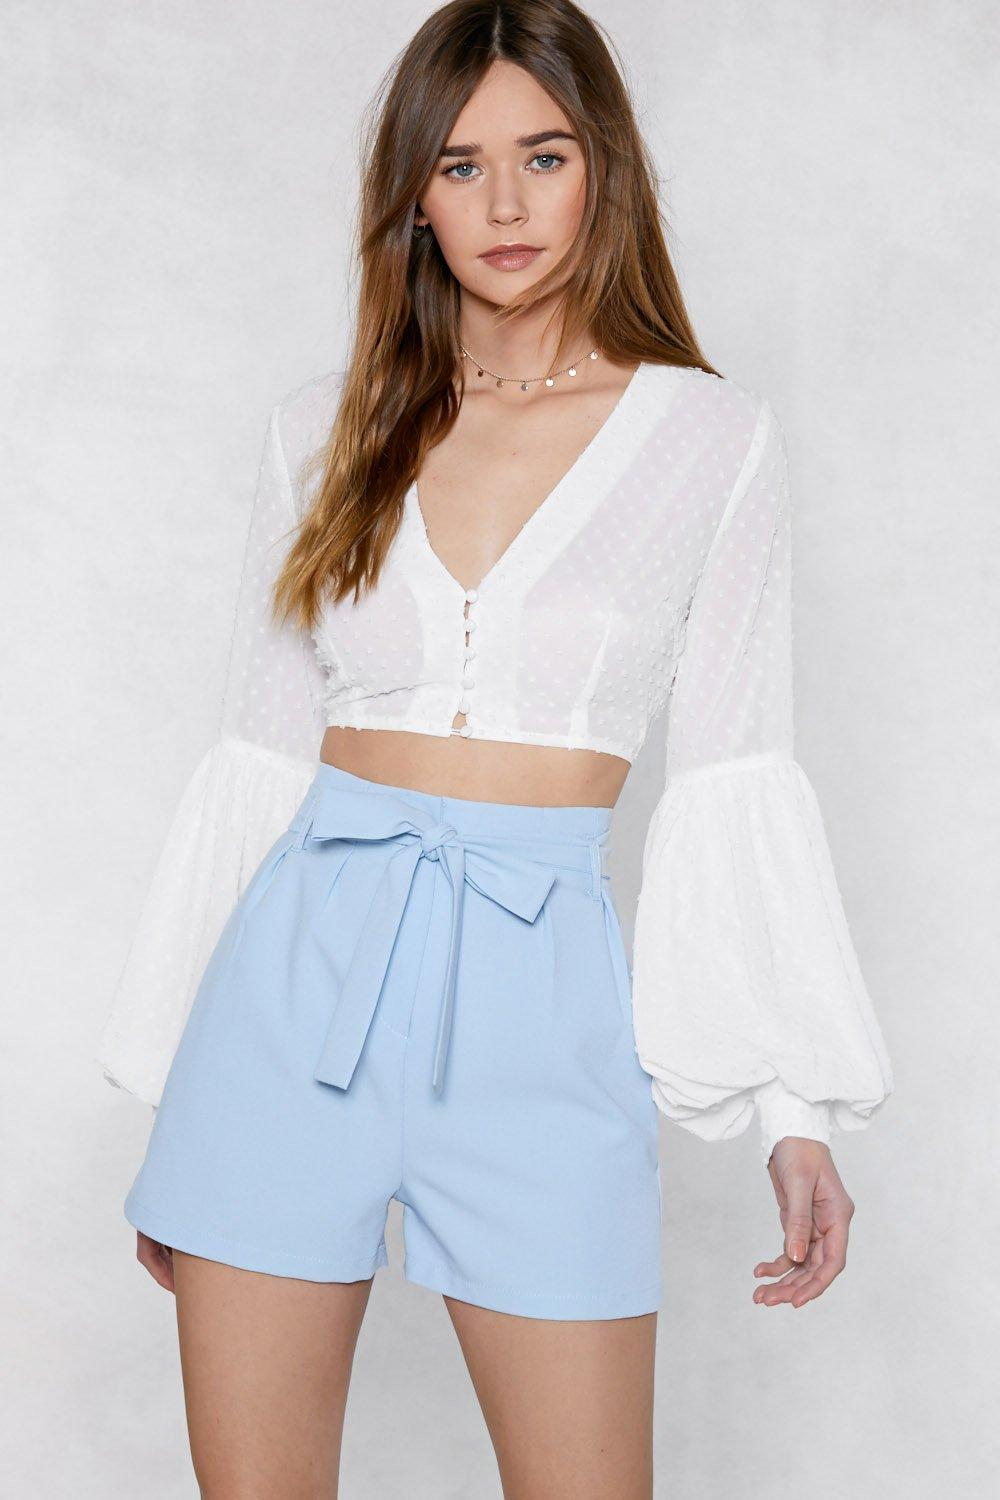 Promise to Tie Tailored Shorts are pictured here in a light blue colour.